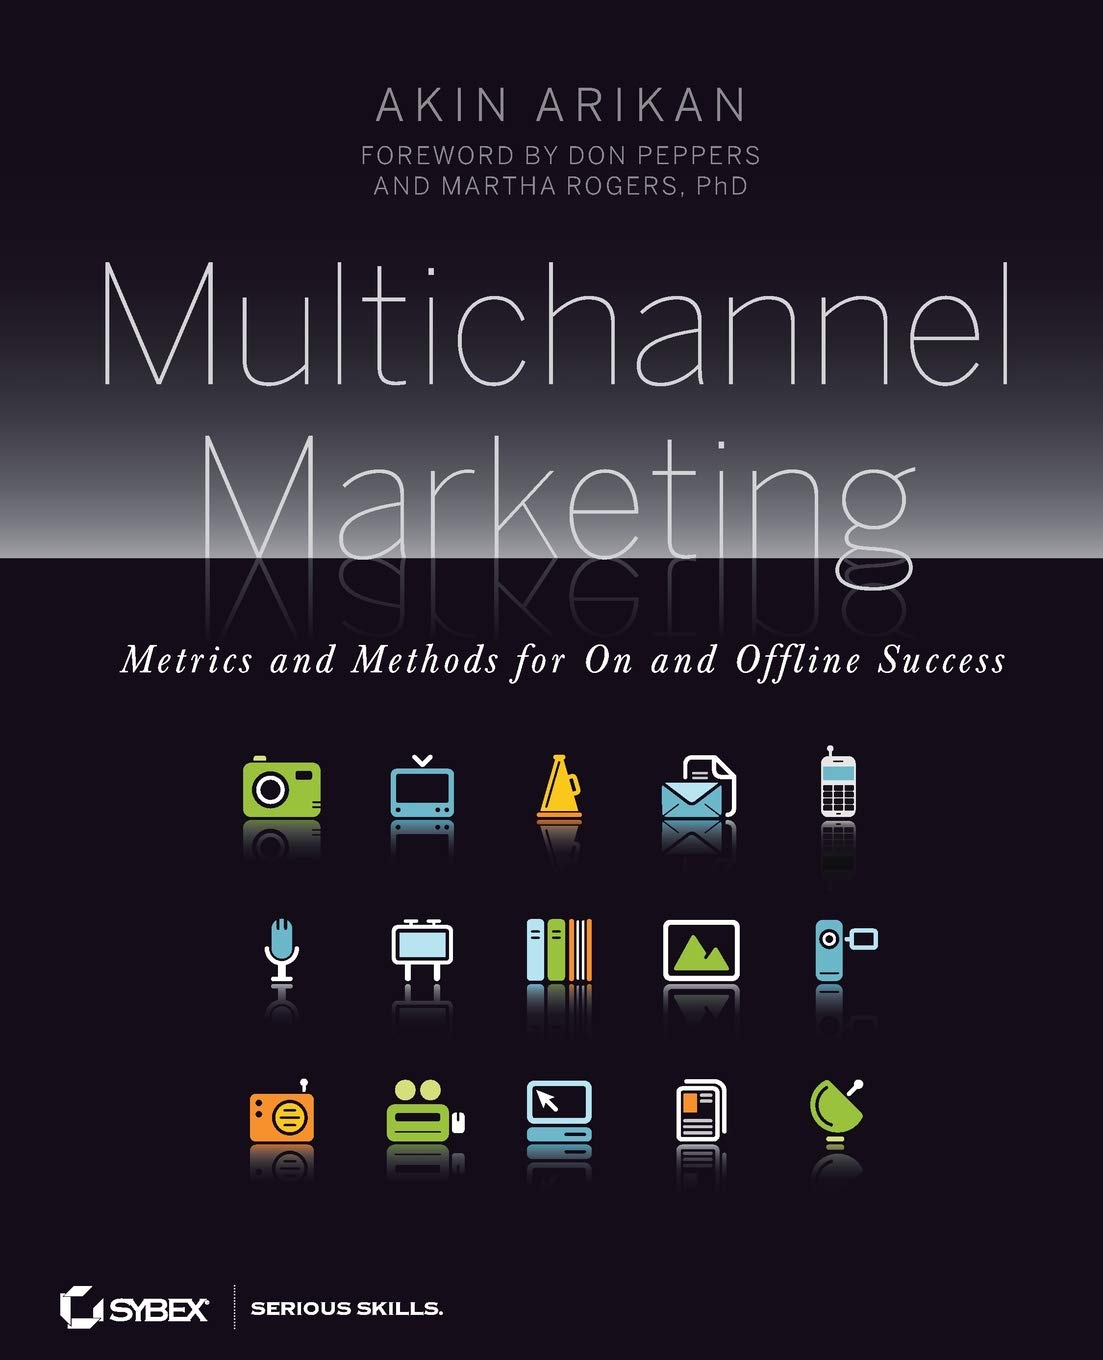 Multichannel Marketing: Metrics and Methods for On and